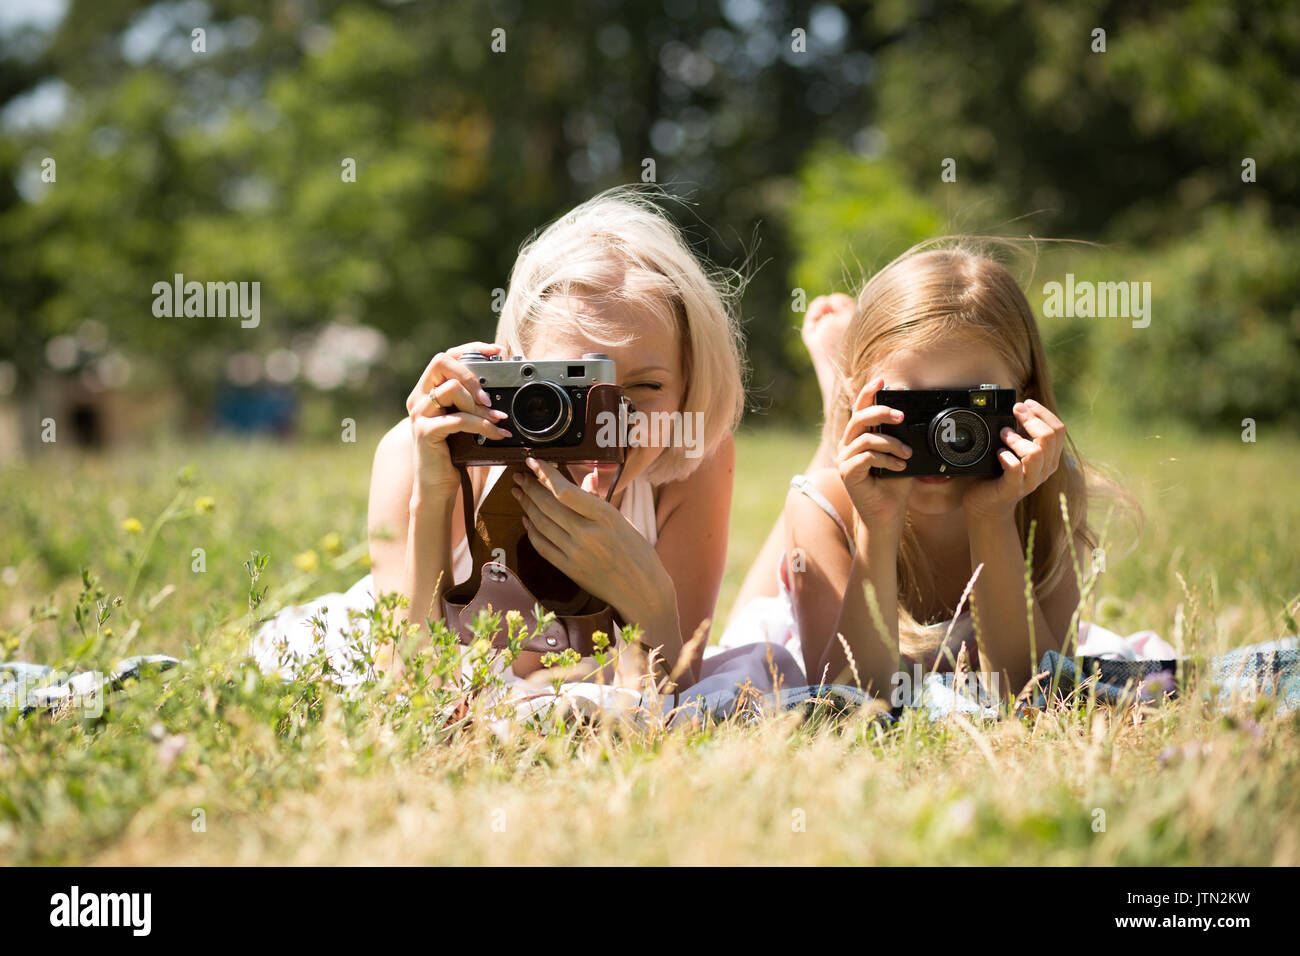 Mom and daughter taking pictures lying on blanket in park. - Stock Image